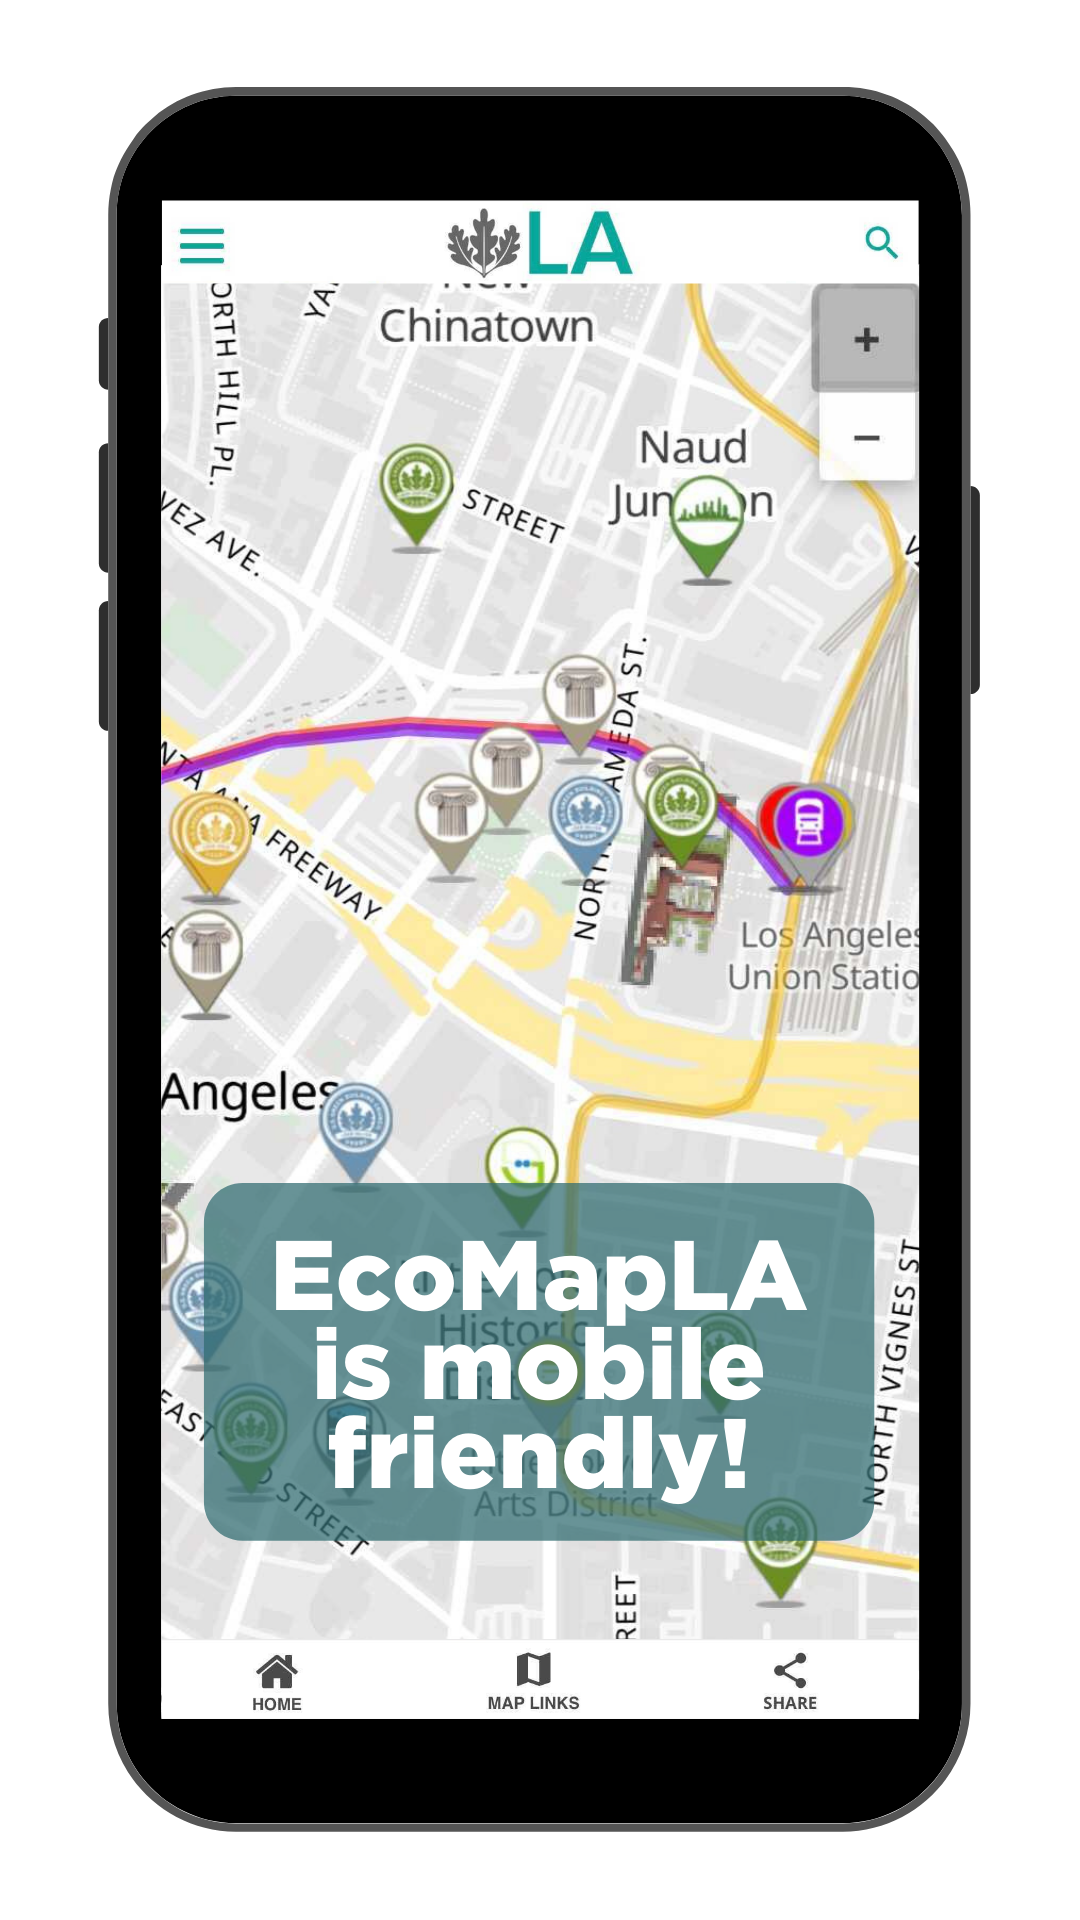 EcoMapLA is mobile friendly!